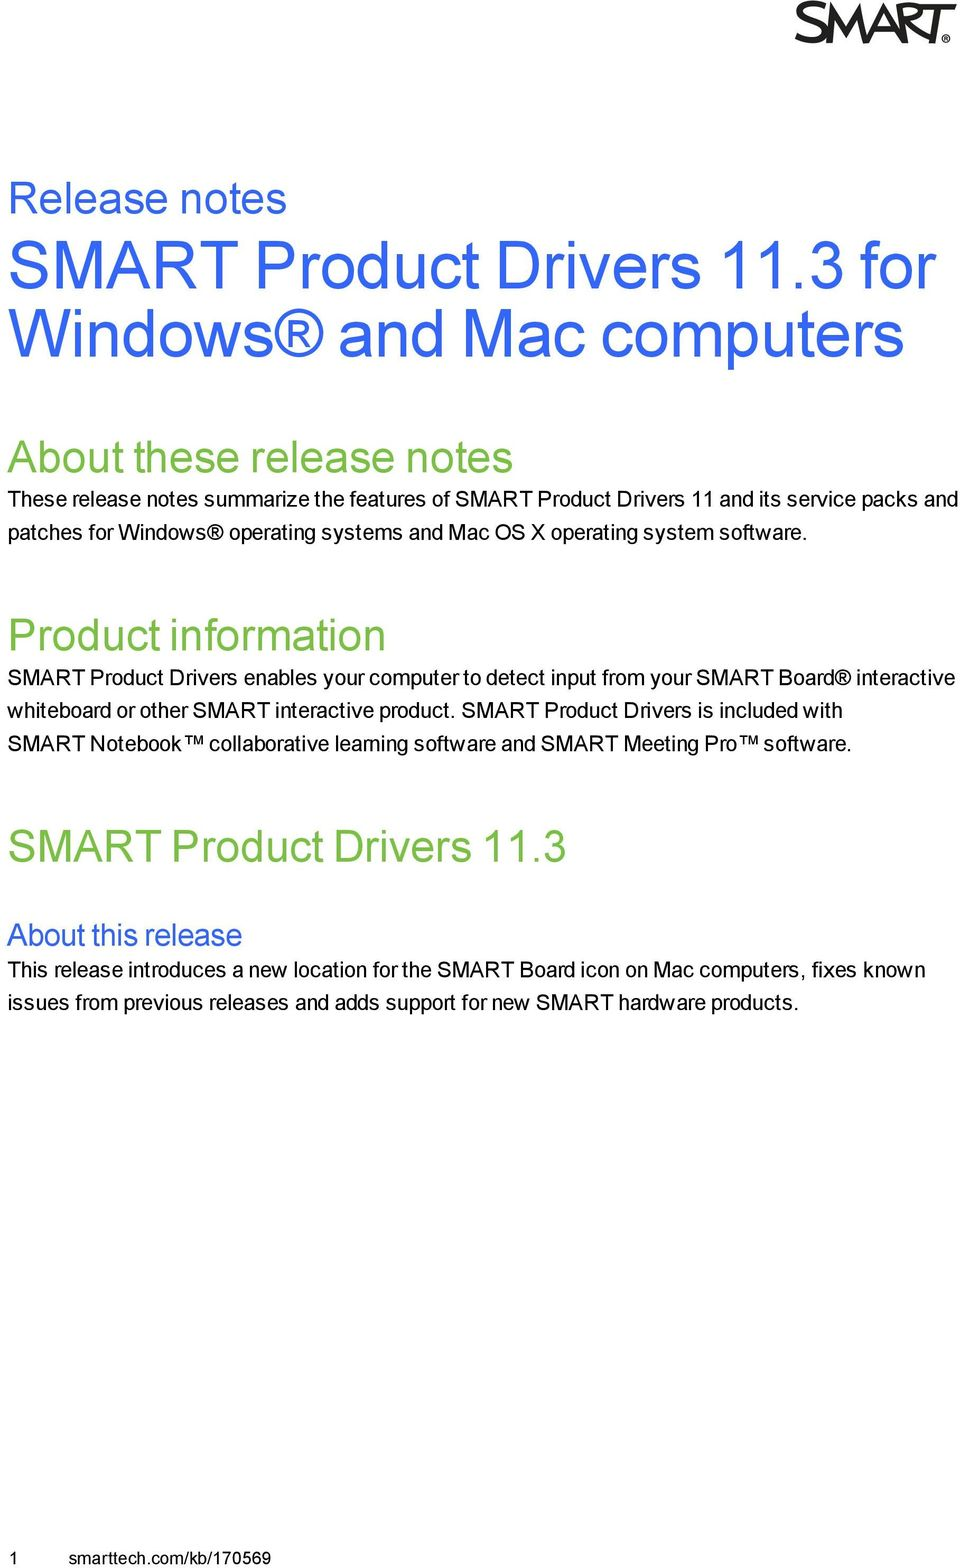 Mac OS X perating system sftware. Prduct infrmatin SMART Prduct Drivers enables yur cmputer t detect input frm yur SMART Bard interactive whitebard r ther SMART interactive prduct.